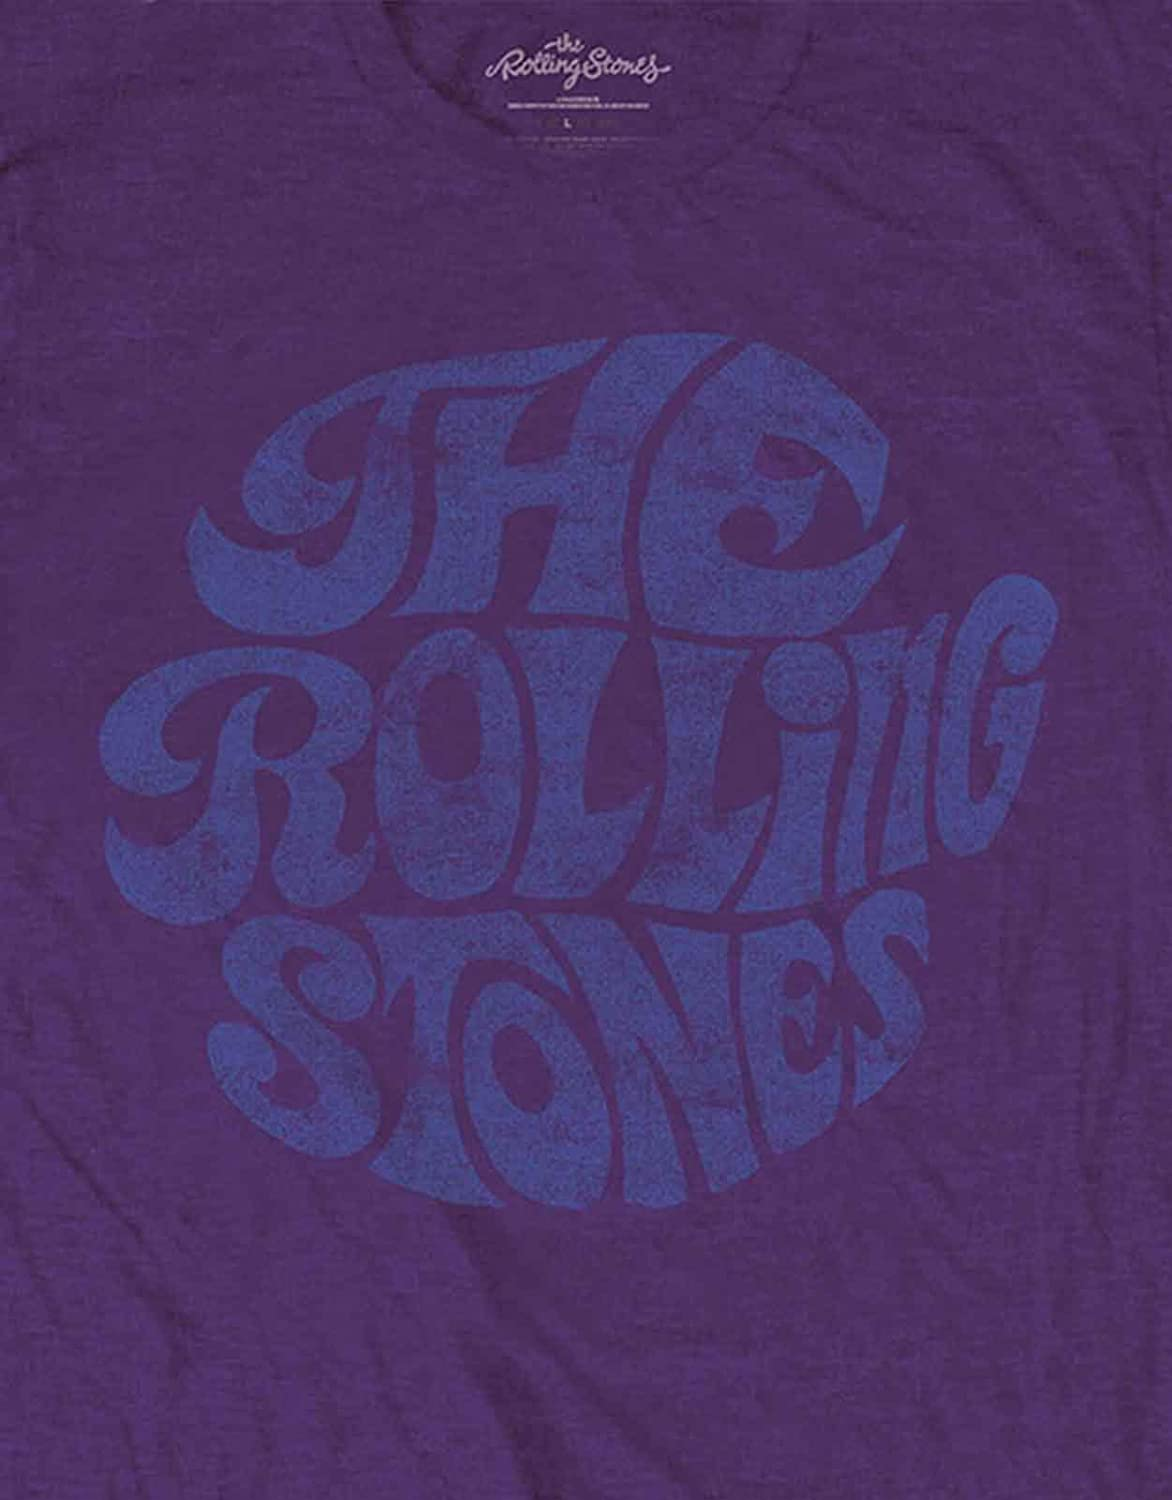 The Rolling Stones T Shirt Vintage 70s Band Logo new Official Mens Purple